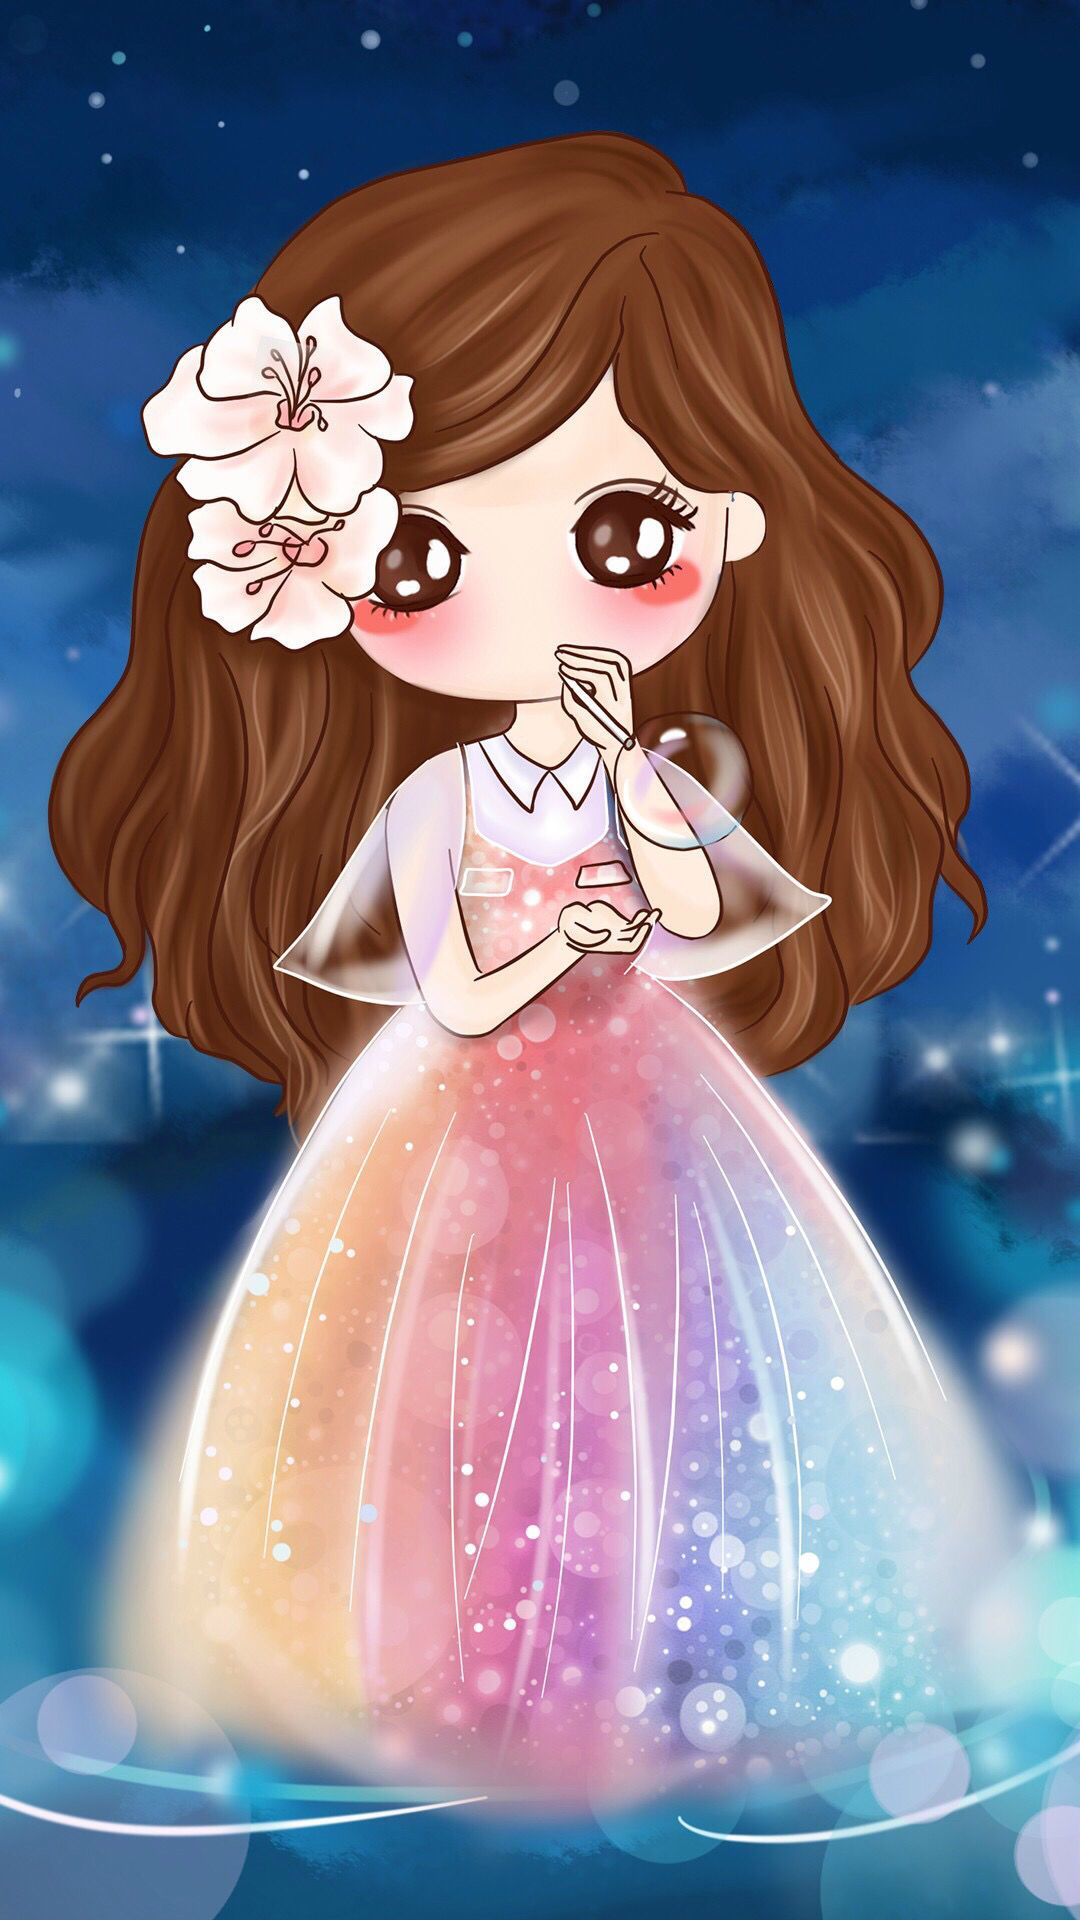 Chibi With Colourful Dress Tap to see more cute chibi